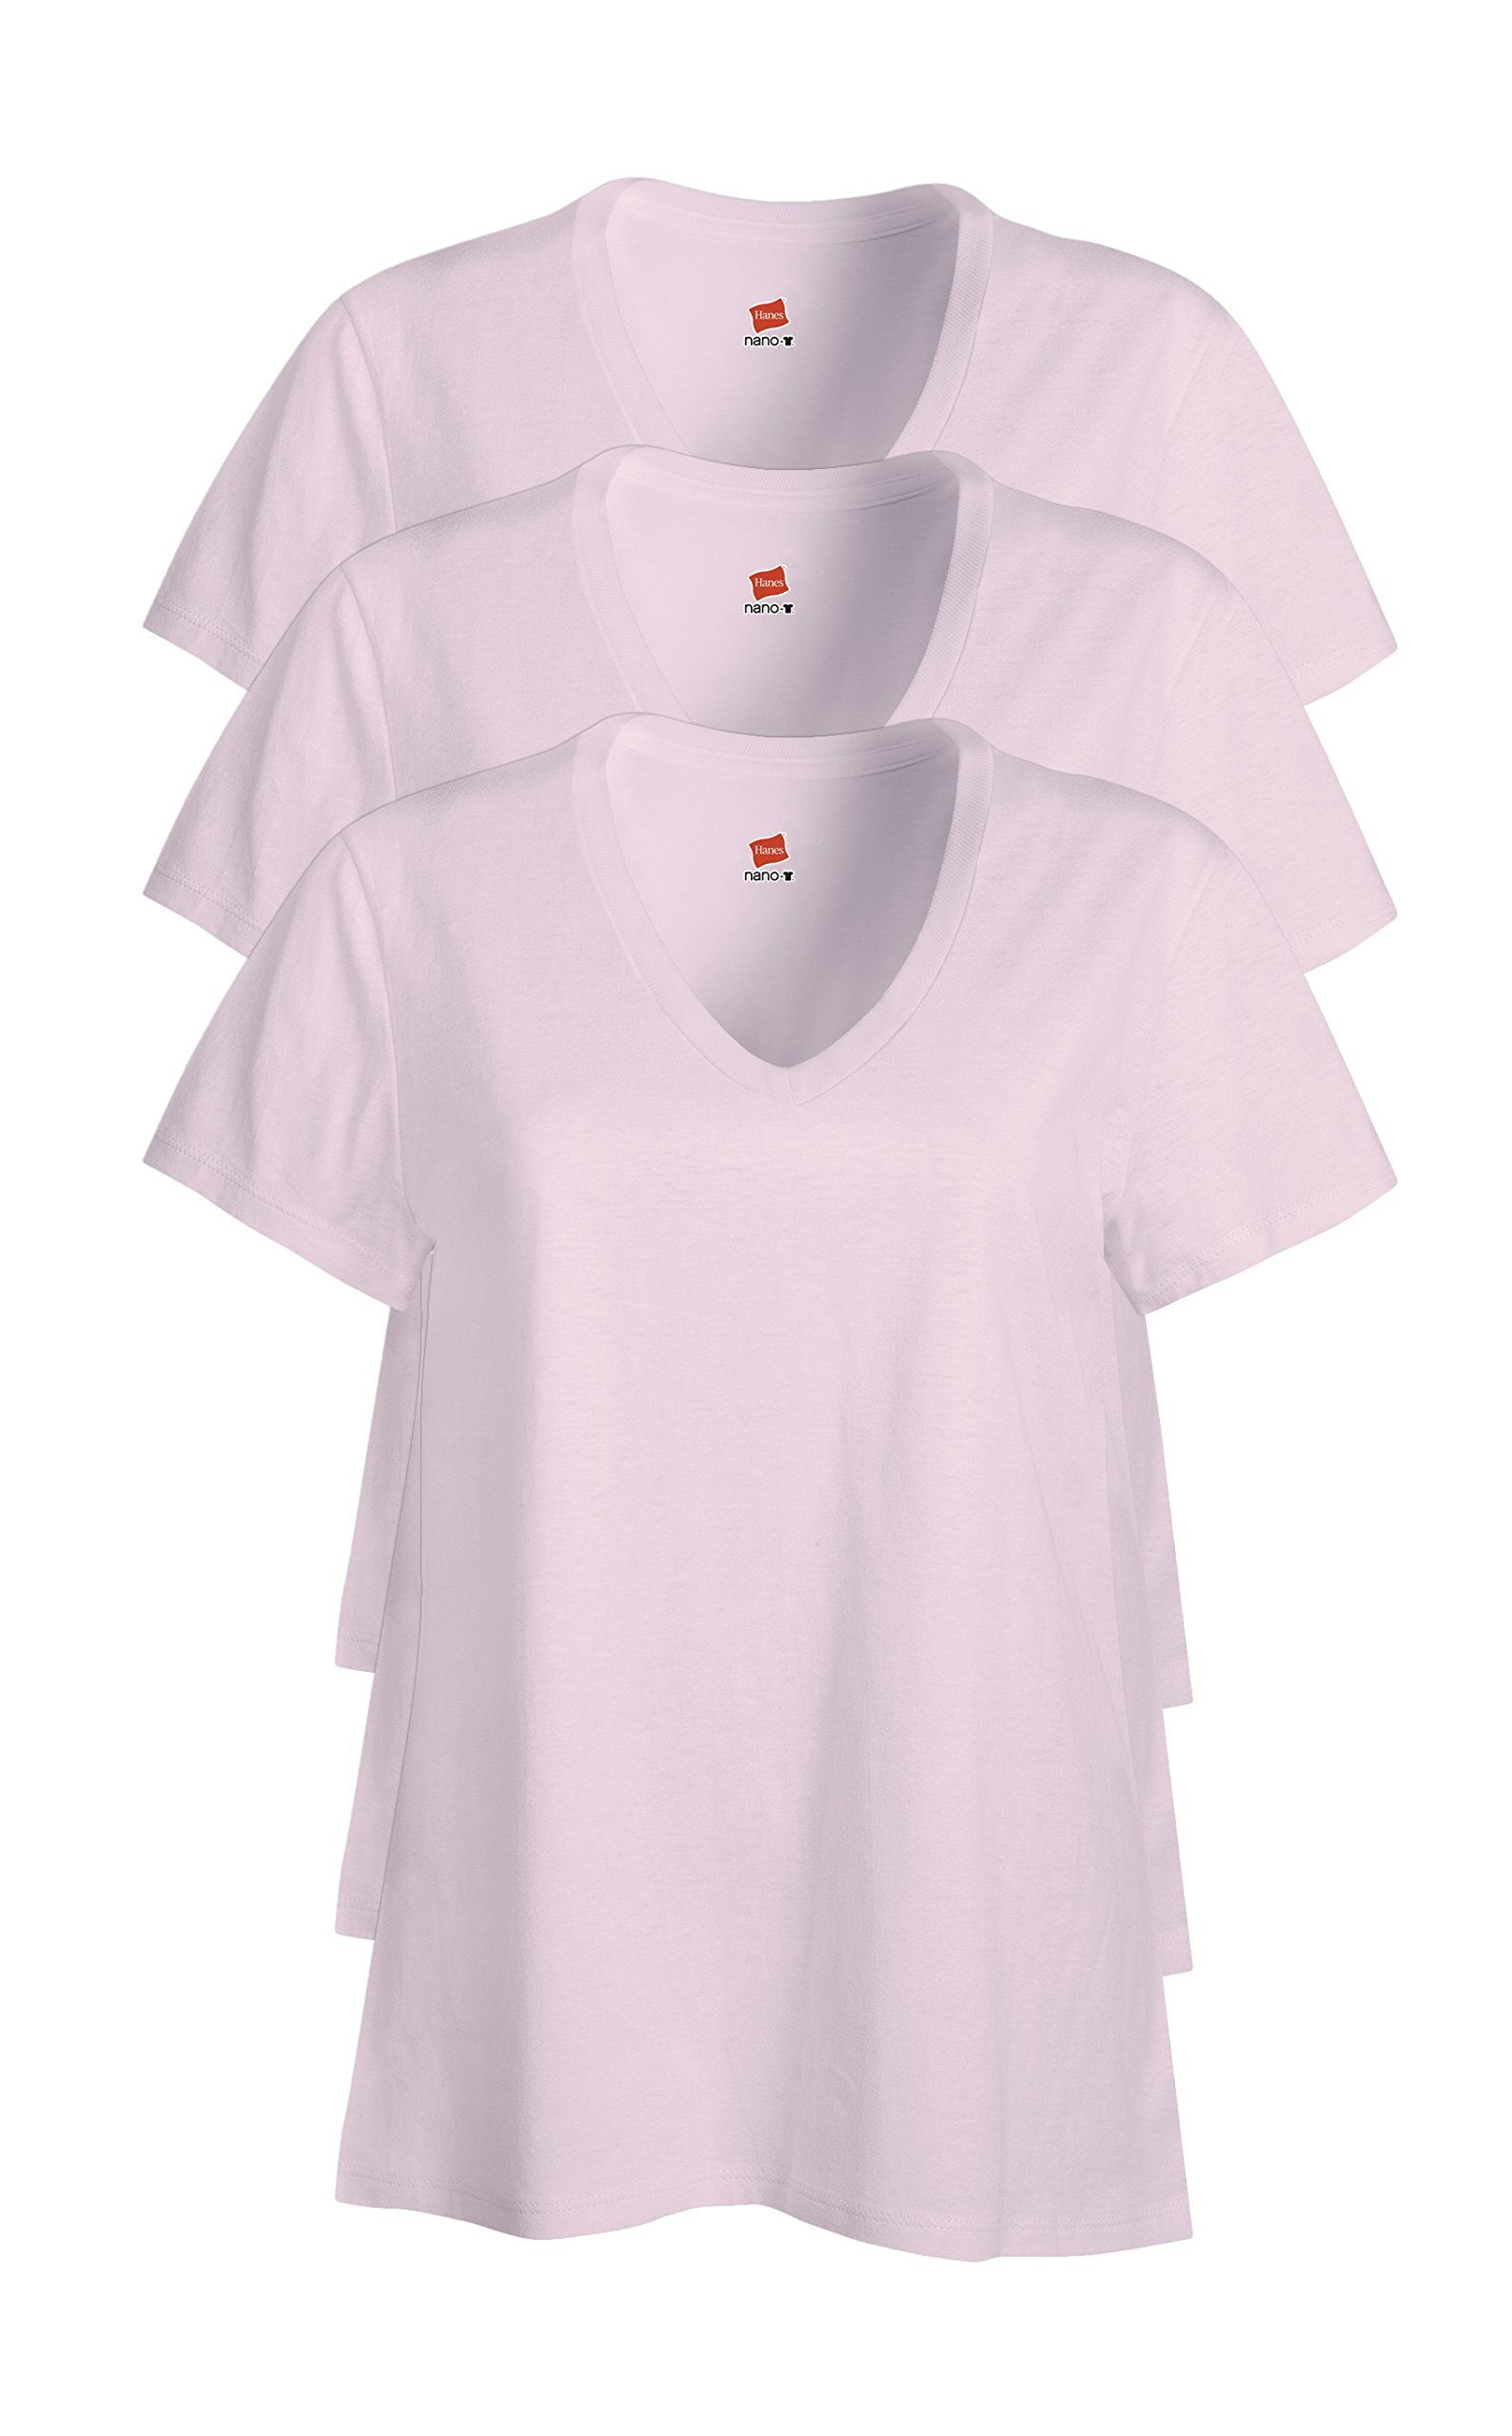 Hanes Womens 4.5 Oz., 100% Ringspun Cotton Nano-T V-Neck T-Shirt (S04V)- Pale Pink,X-Large